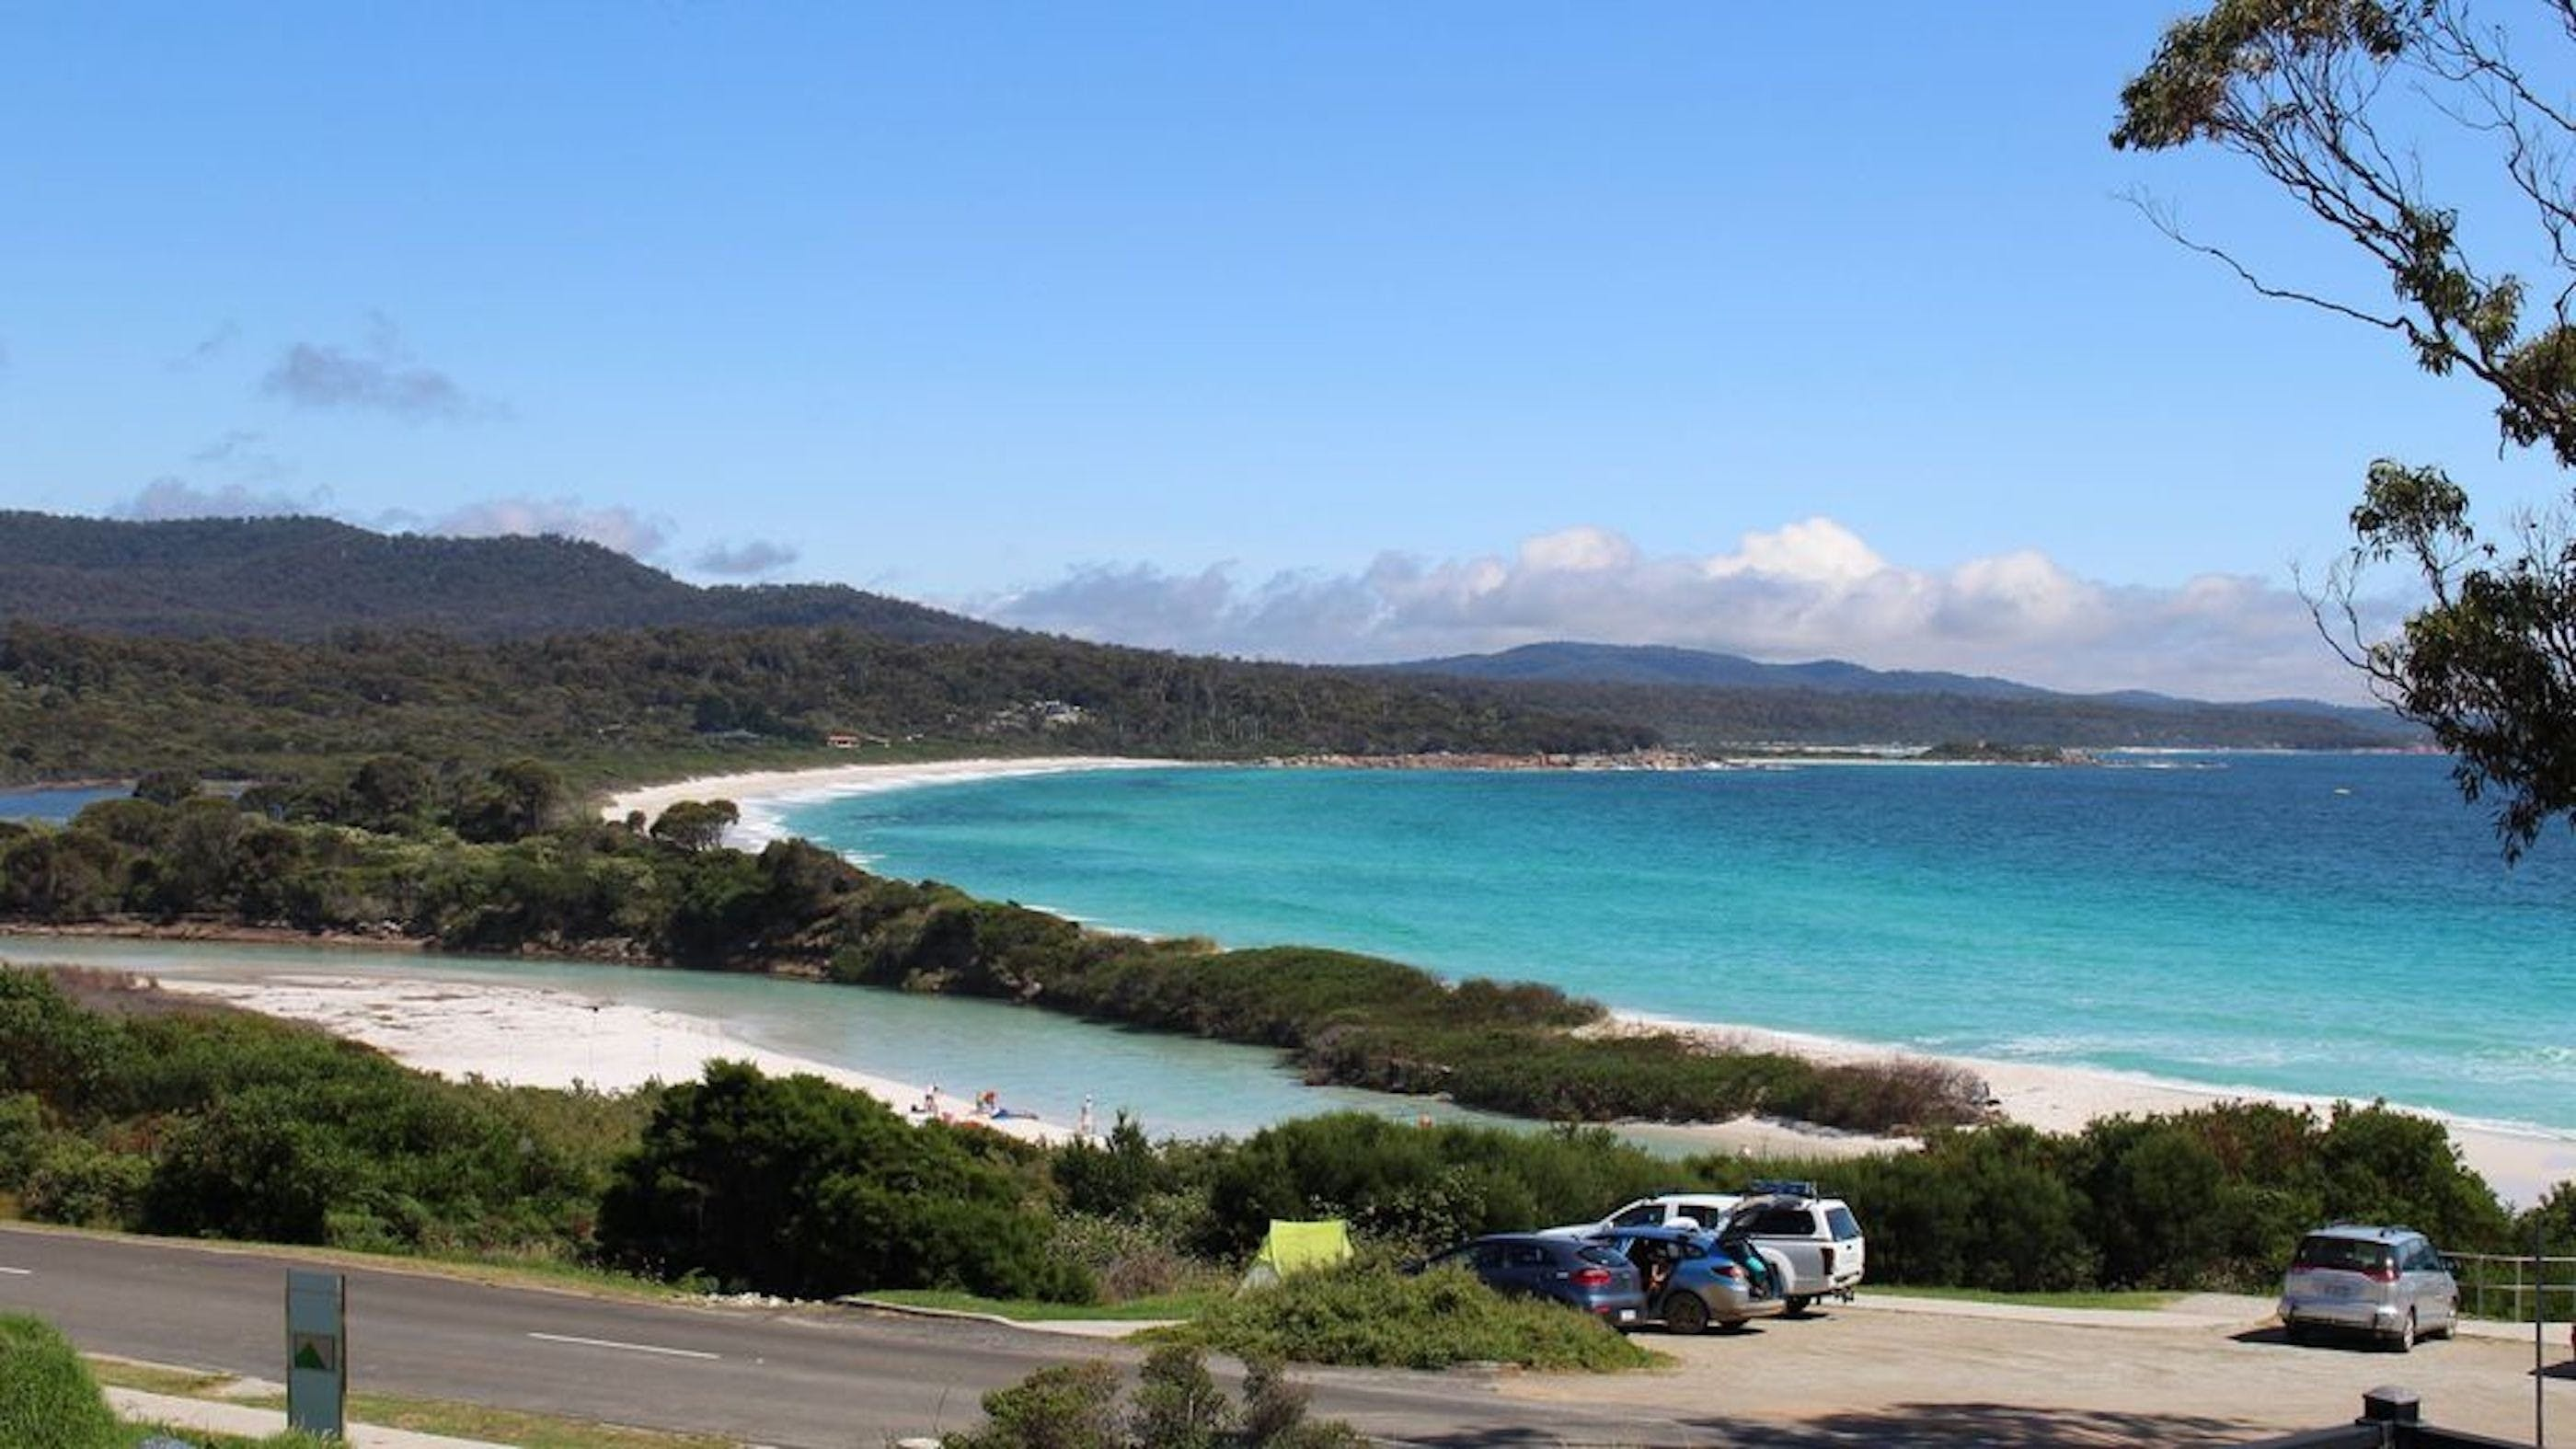 Villa 2 Bay of Fires - Accommodation Gold Coast